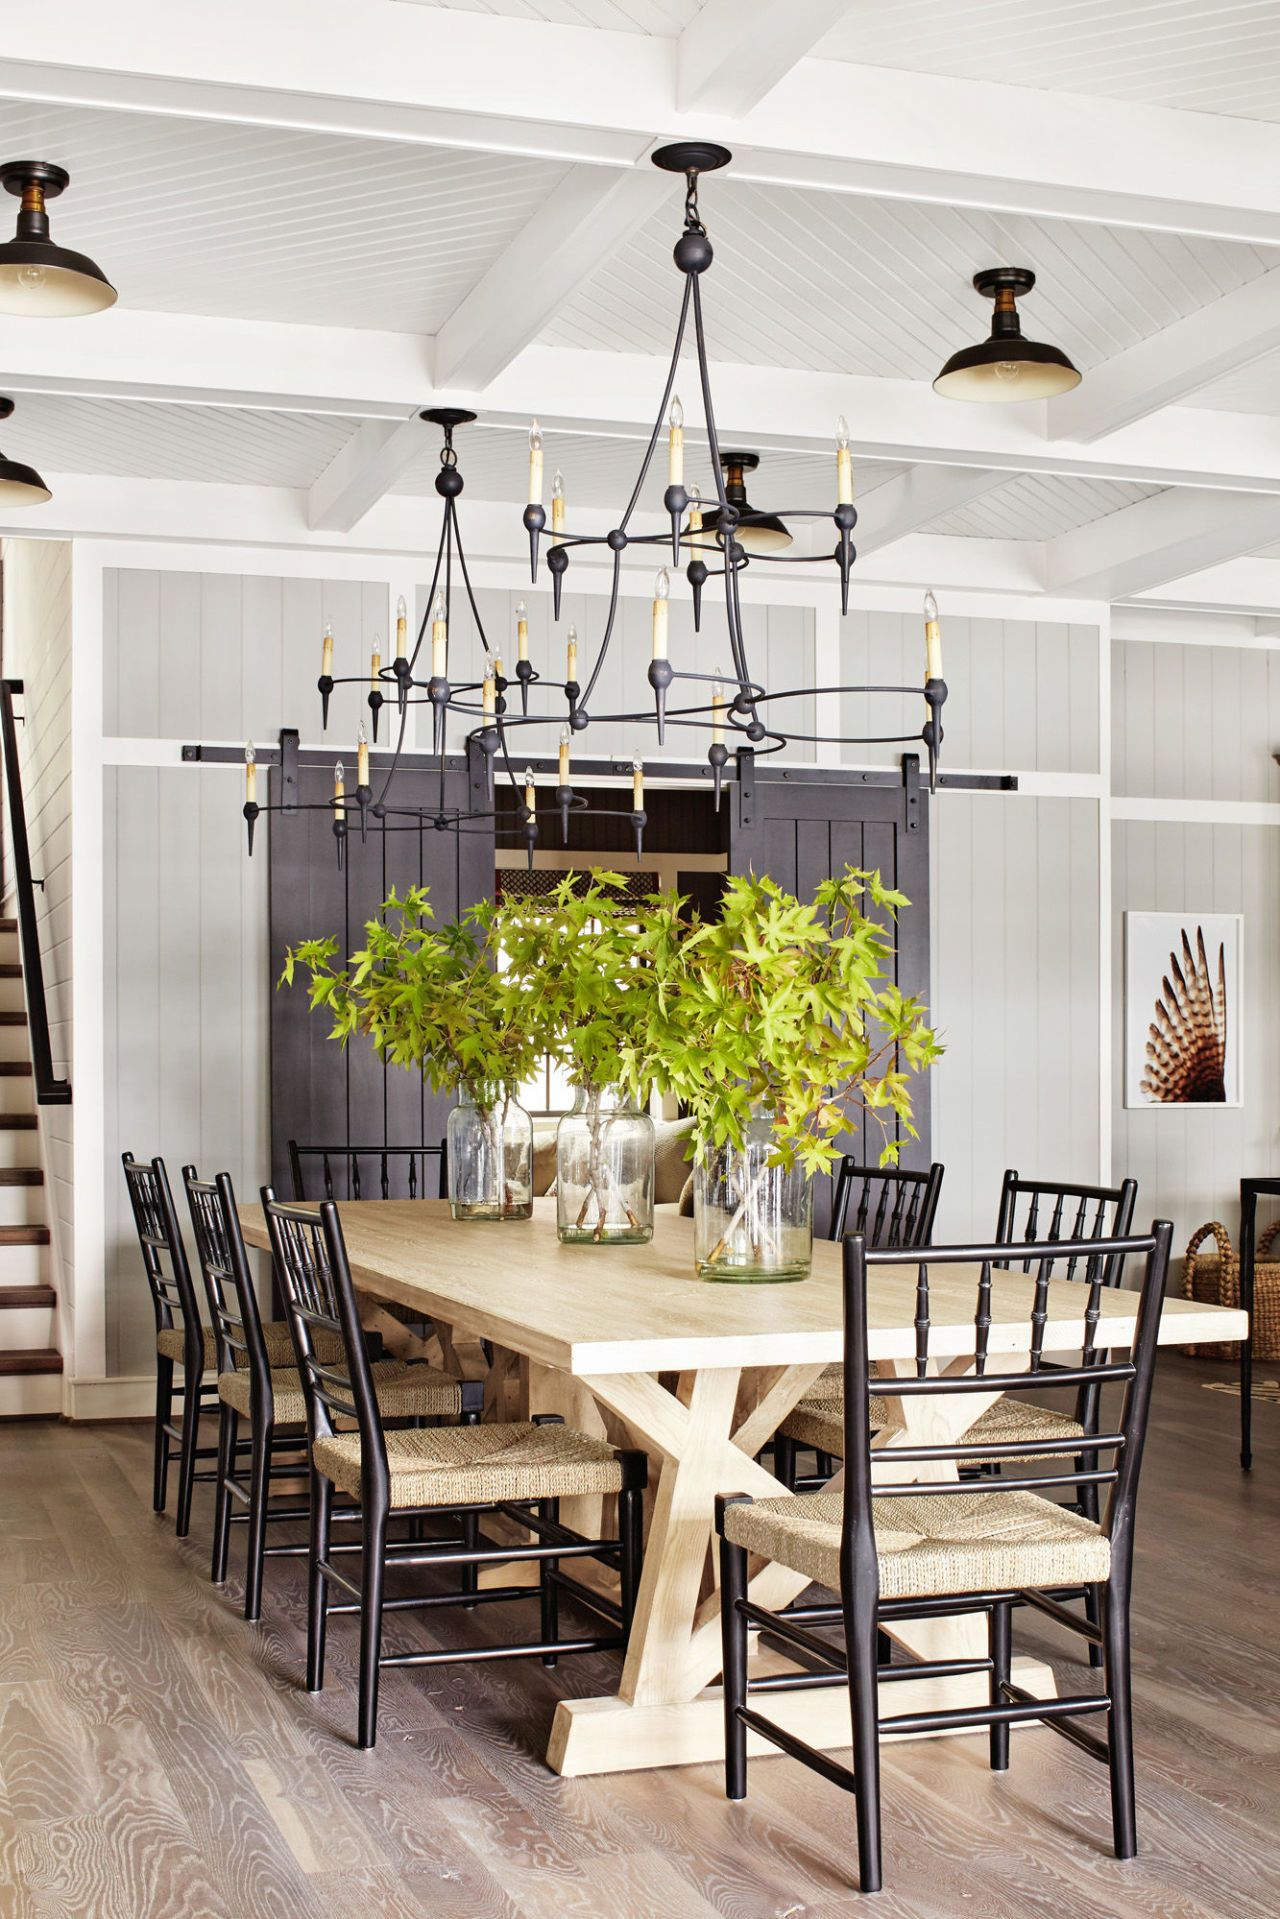 farmhouse kitchen tables grills best farm country max kim bee styling by sarah cave designer thom filicia